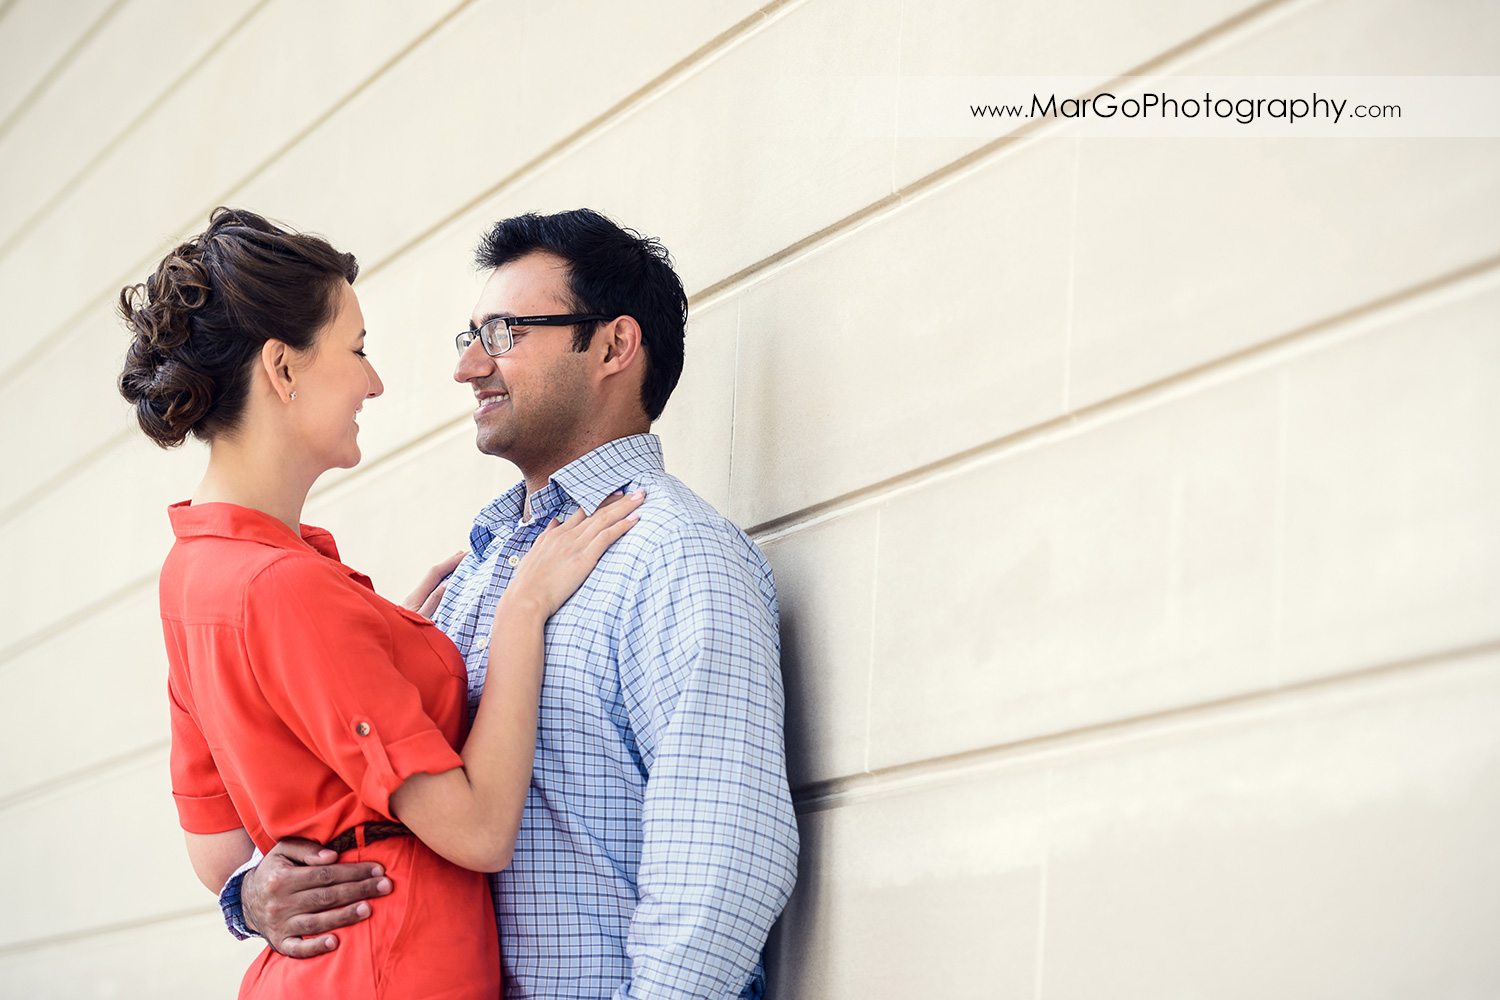 portrait of woman in red dress and man in blue shirt looking at each other during engagement session at San Francisco Legion of Honor